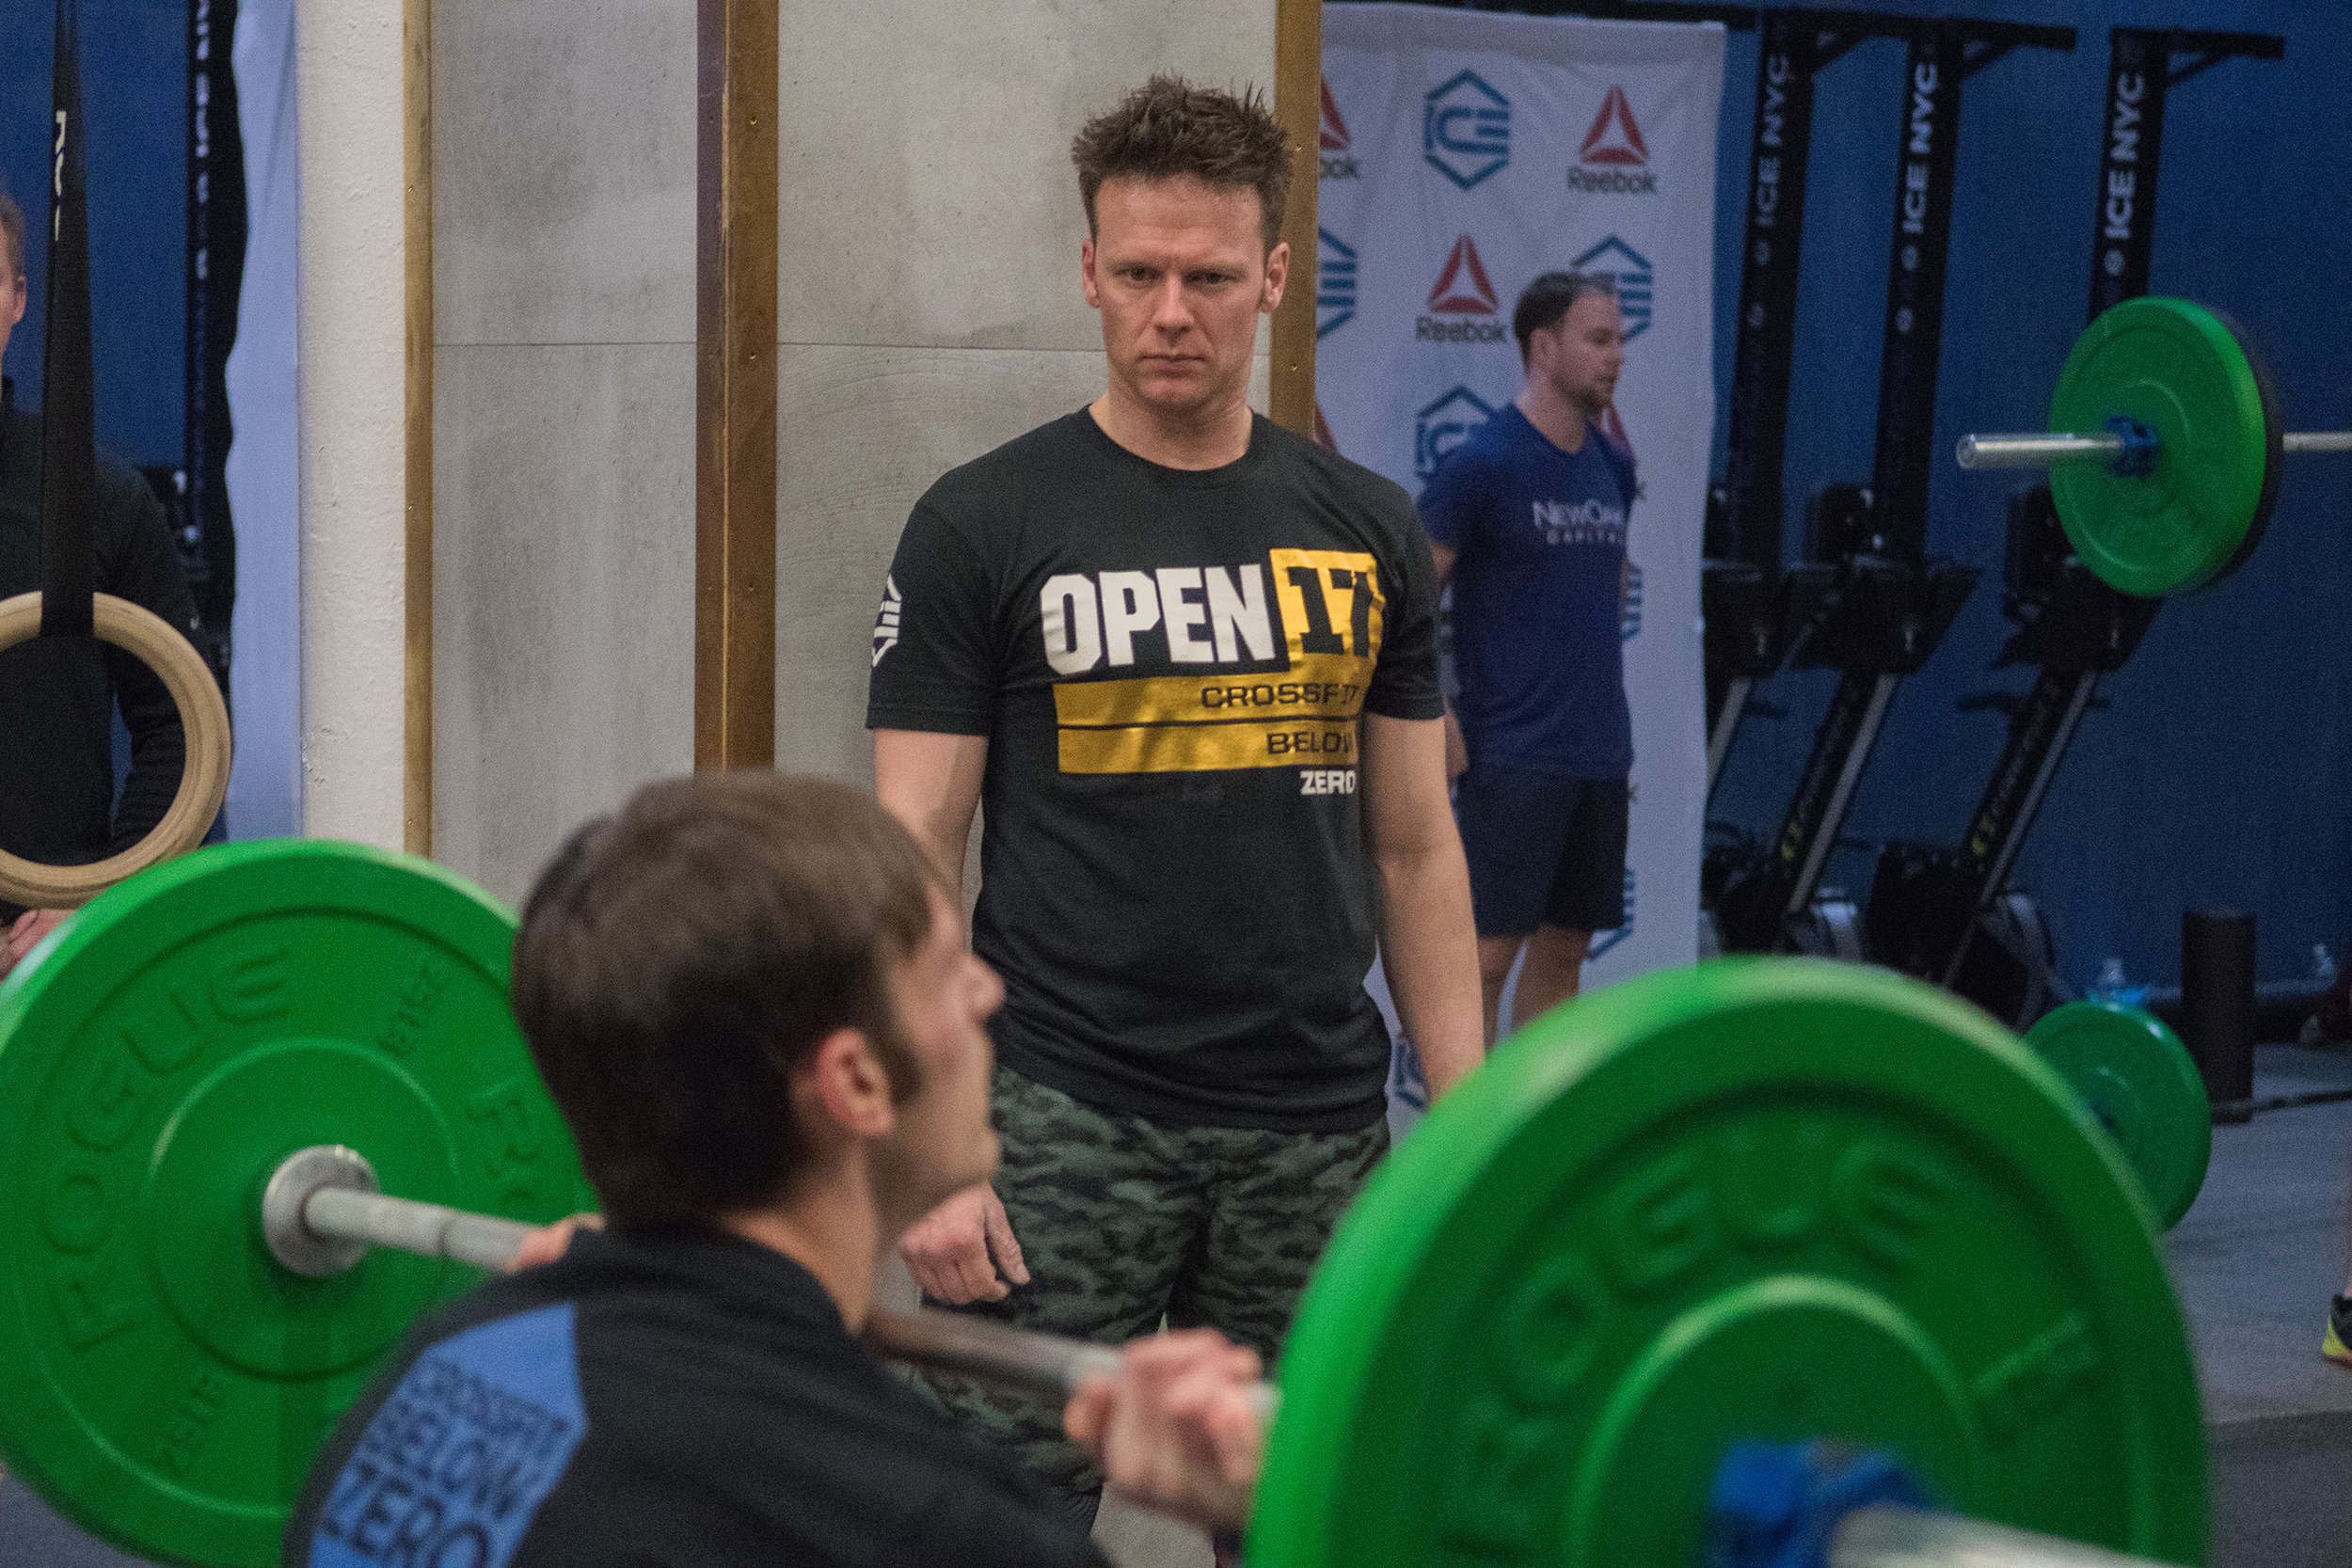 ICE NYC CrossFit Open 17.5 @martsromero - Quick Selects 016 20170324.jpg